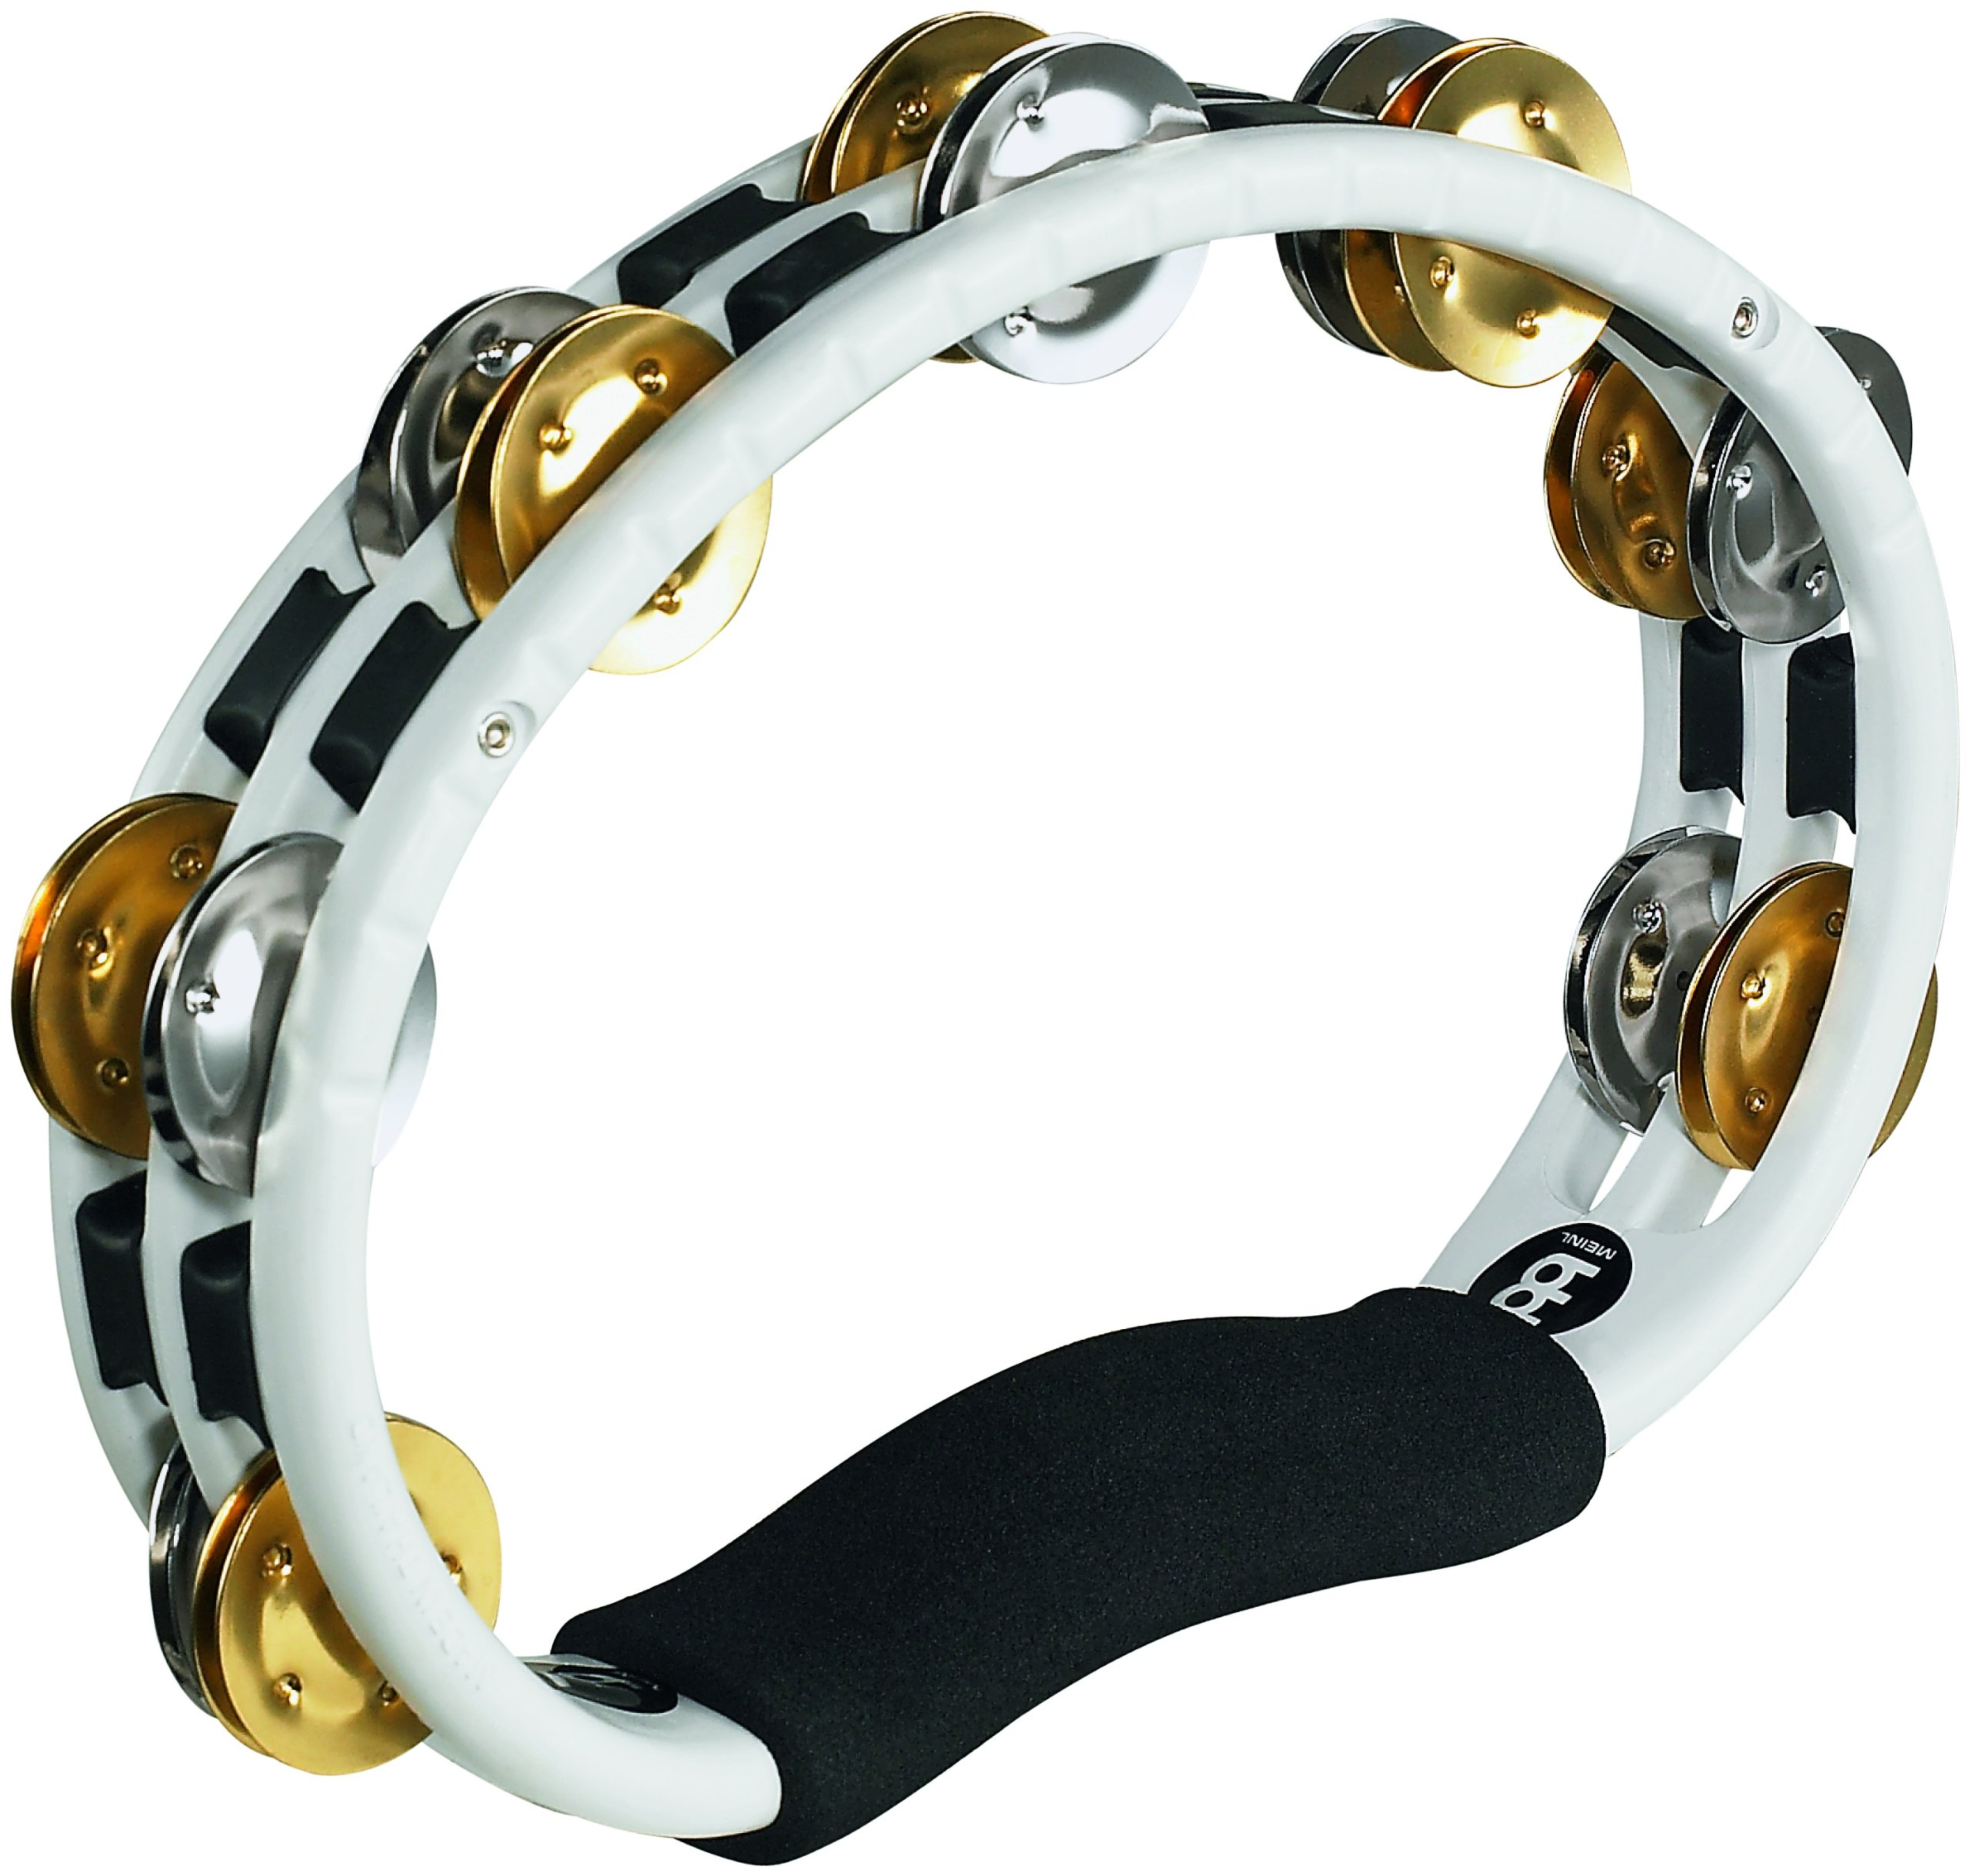 Meinl Percussion TMT1M-WH Dual Alloy Recording Combo Tambourine, White by Meinl Percussion